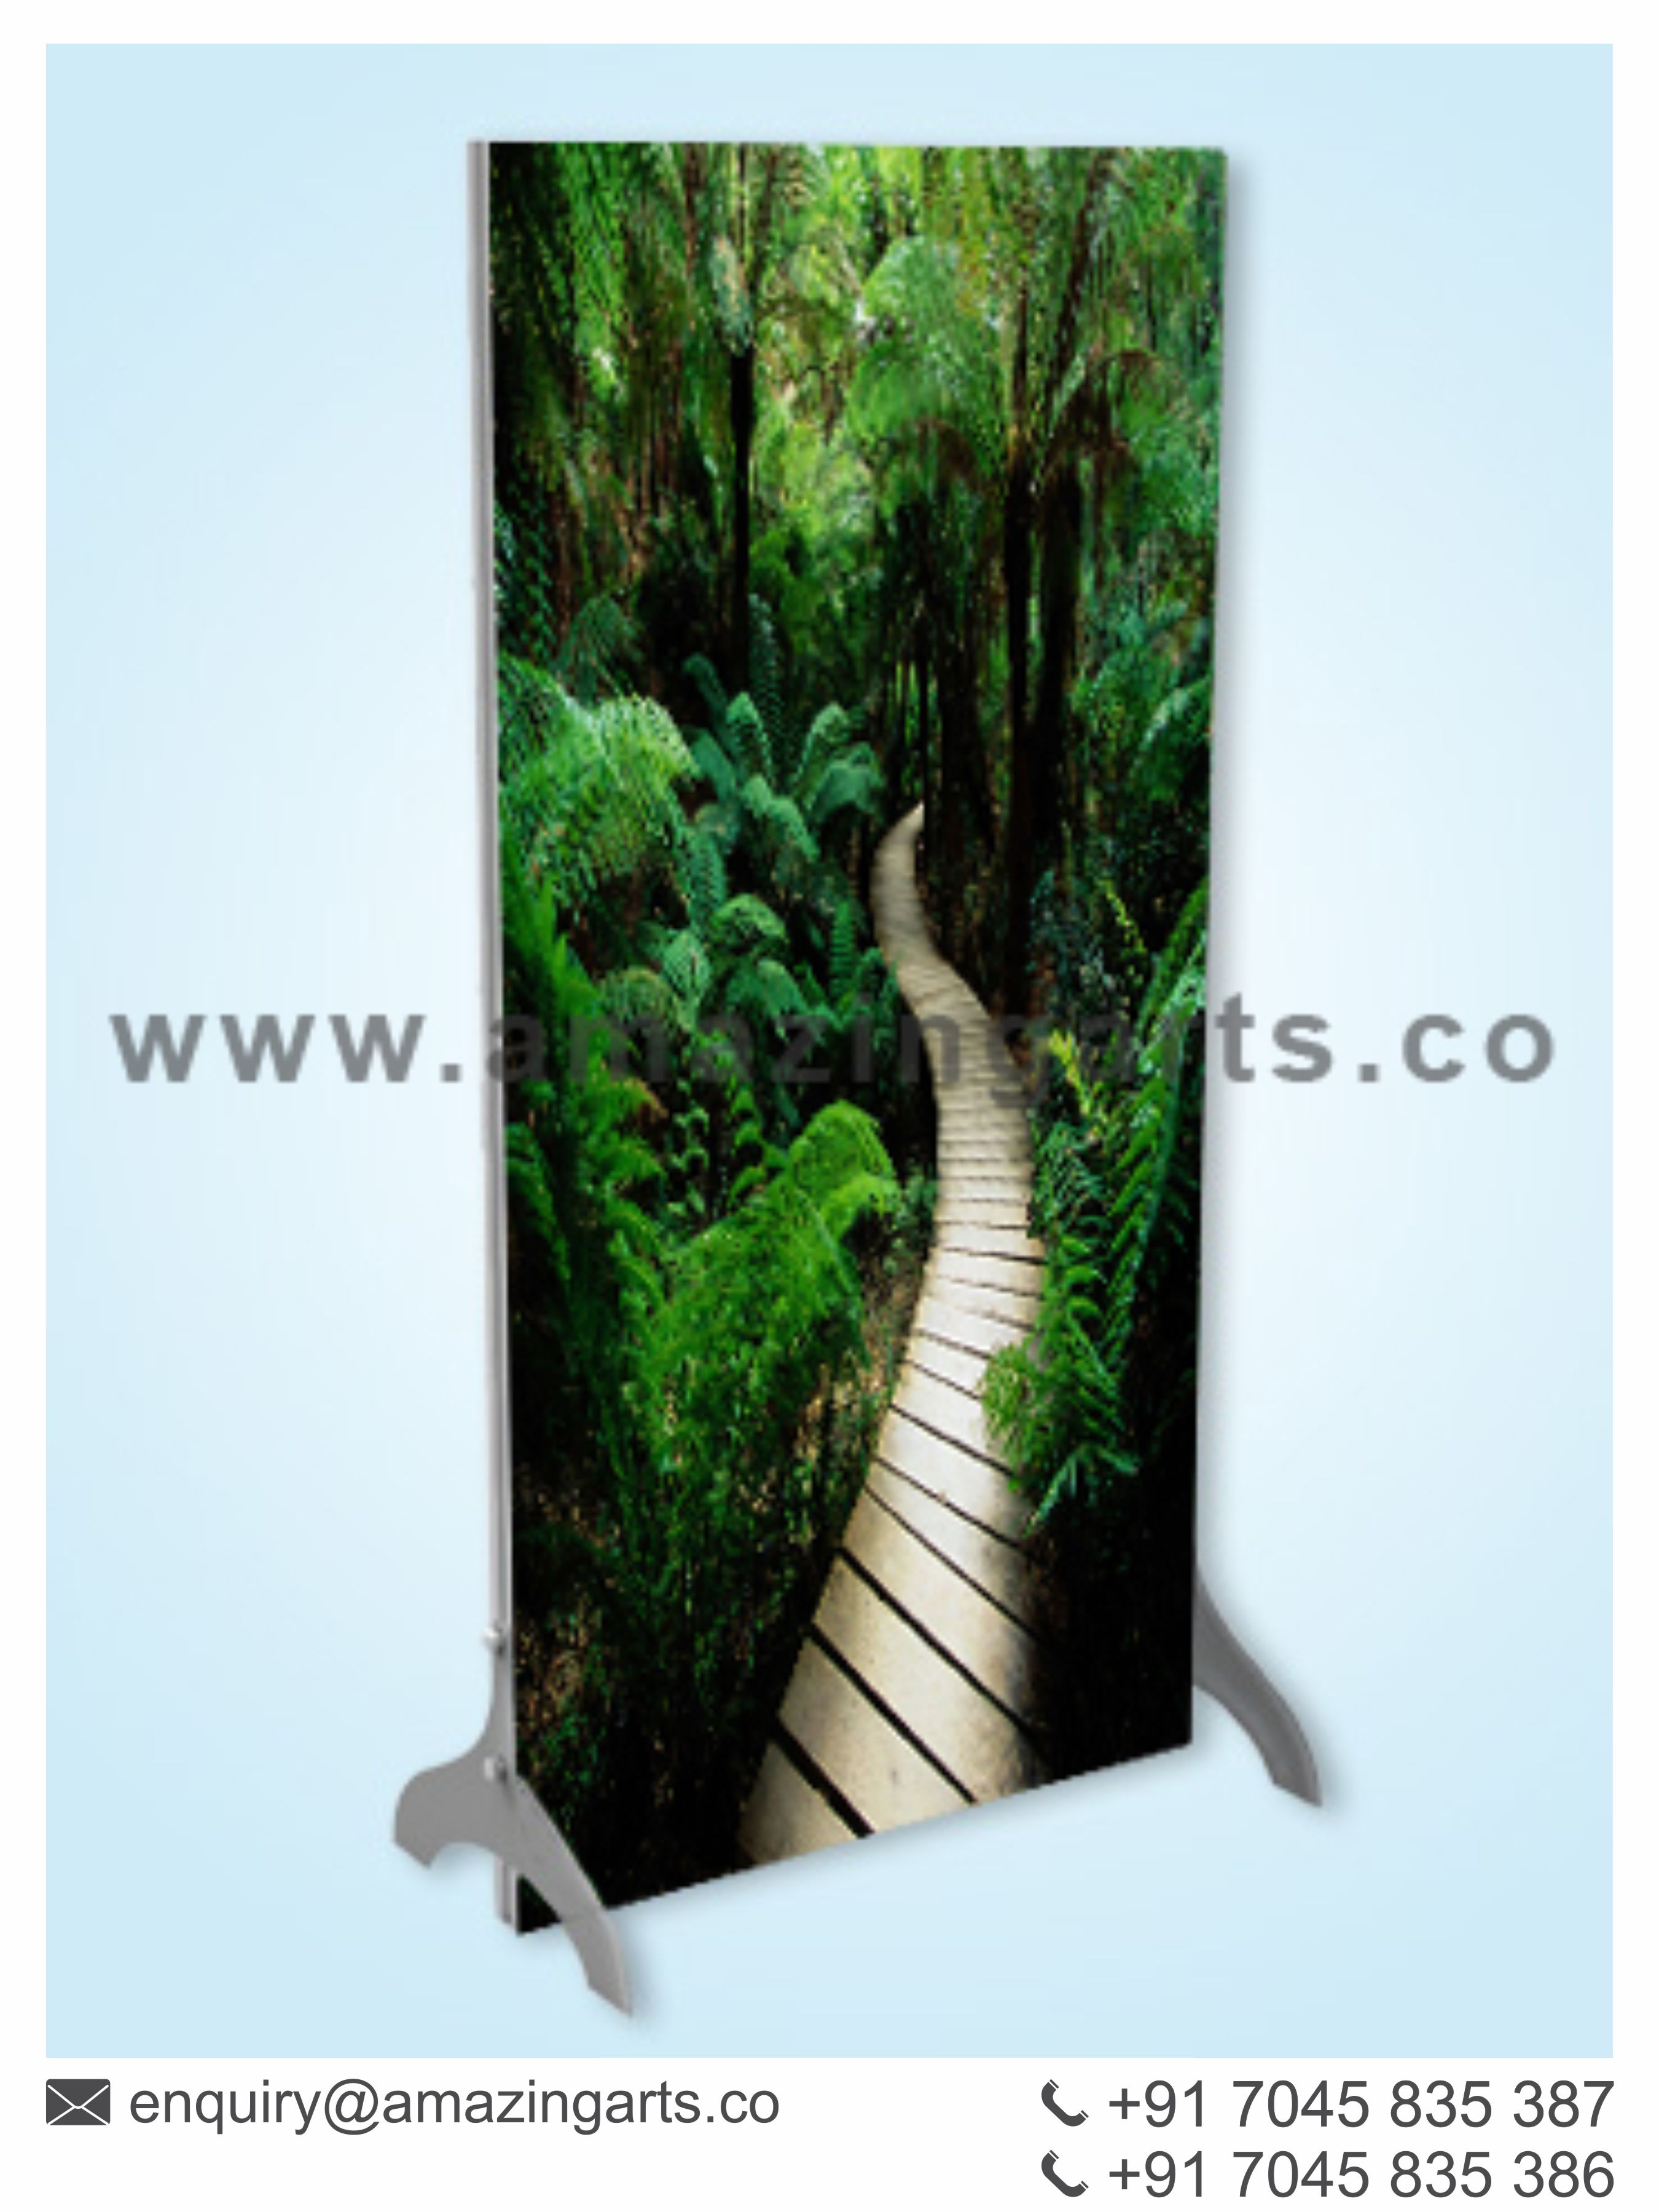 Exhibition Stand Frames : Double sided free standing backlit frame exhibition stall designer